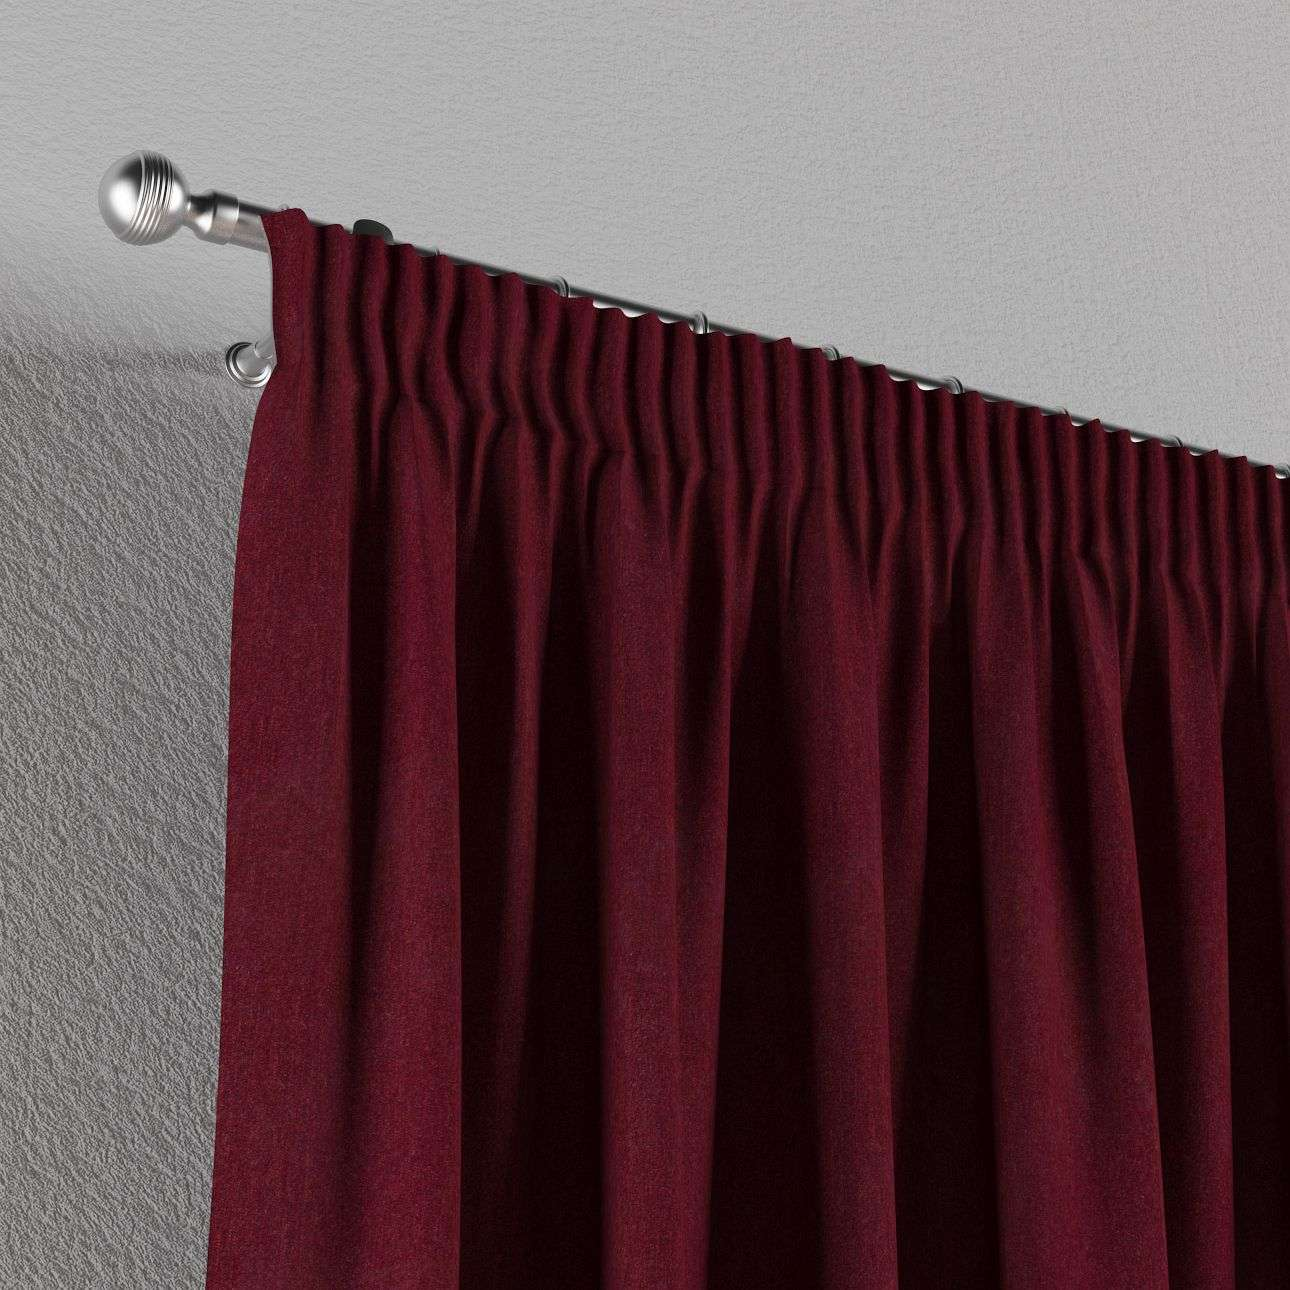 Pencil pleat curtains 130 x 260 cm (51 x 102 inch) in collection Chenille, fabric: 702-19